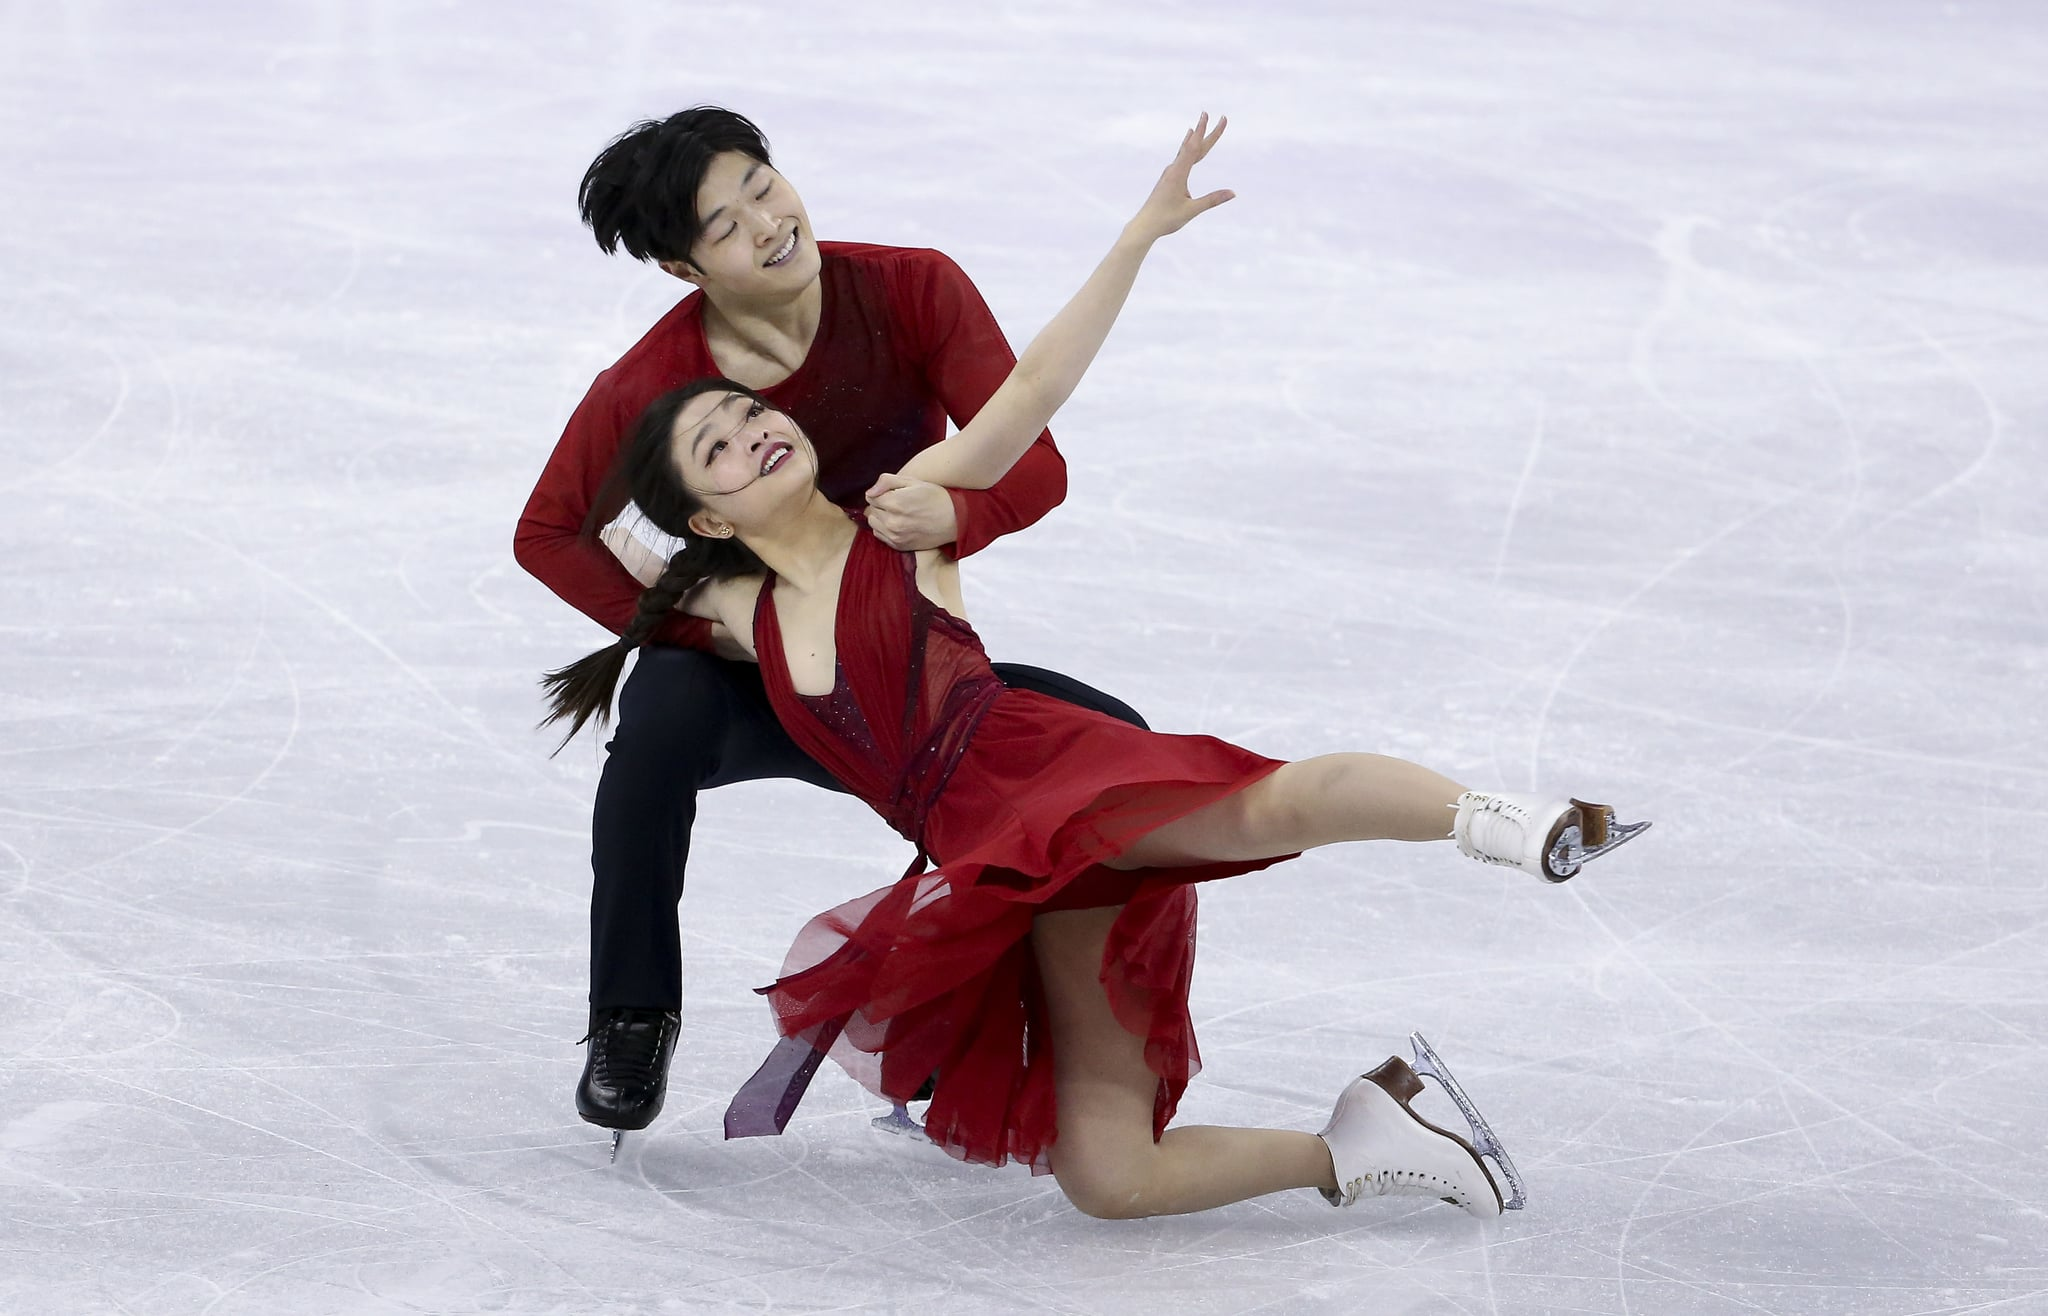 GANGNEUNG, SOUTH KOREA - FEBRUARY 20: Maia Shibutani and Alex Shibutani of USA compete during the Figure Skating Ice Dance Free Dance program on day eleven of the PyeongChang 2018 Winter Olympic Games at Gangneung Ice Arena on February 20, 2018 in Gangneung, South Korea. (Photo by Jean Catuffe/Getty Images)